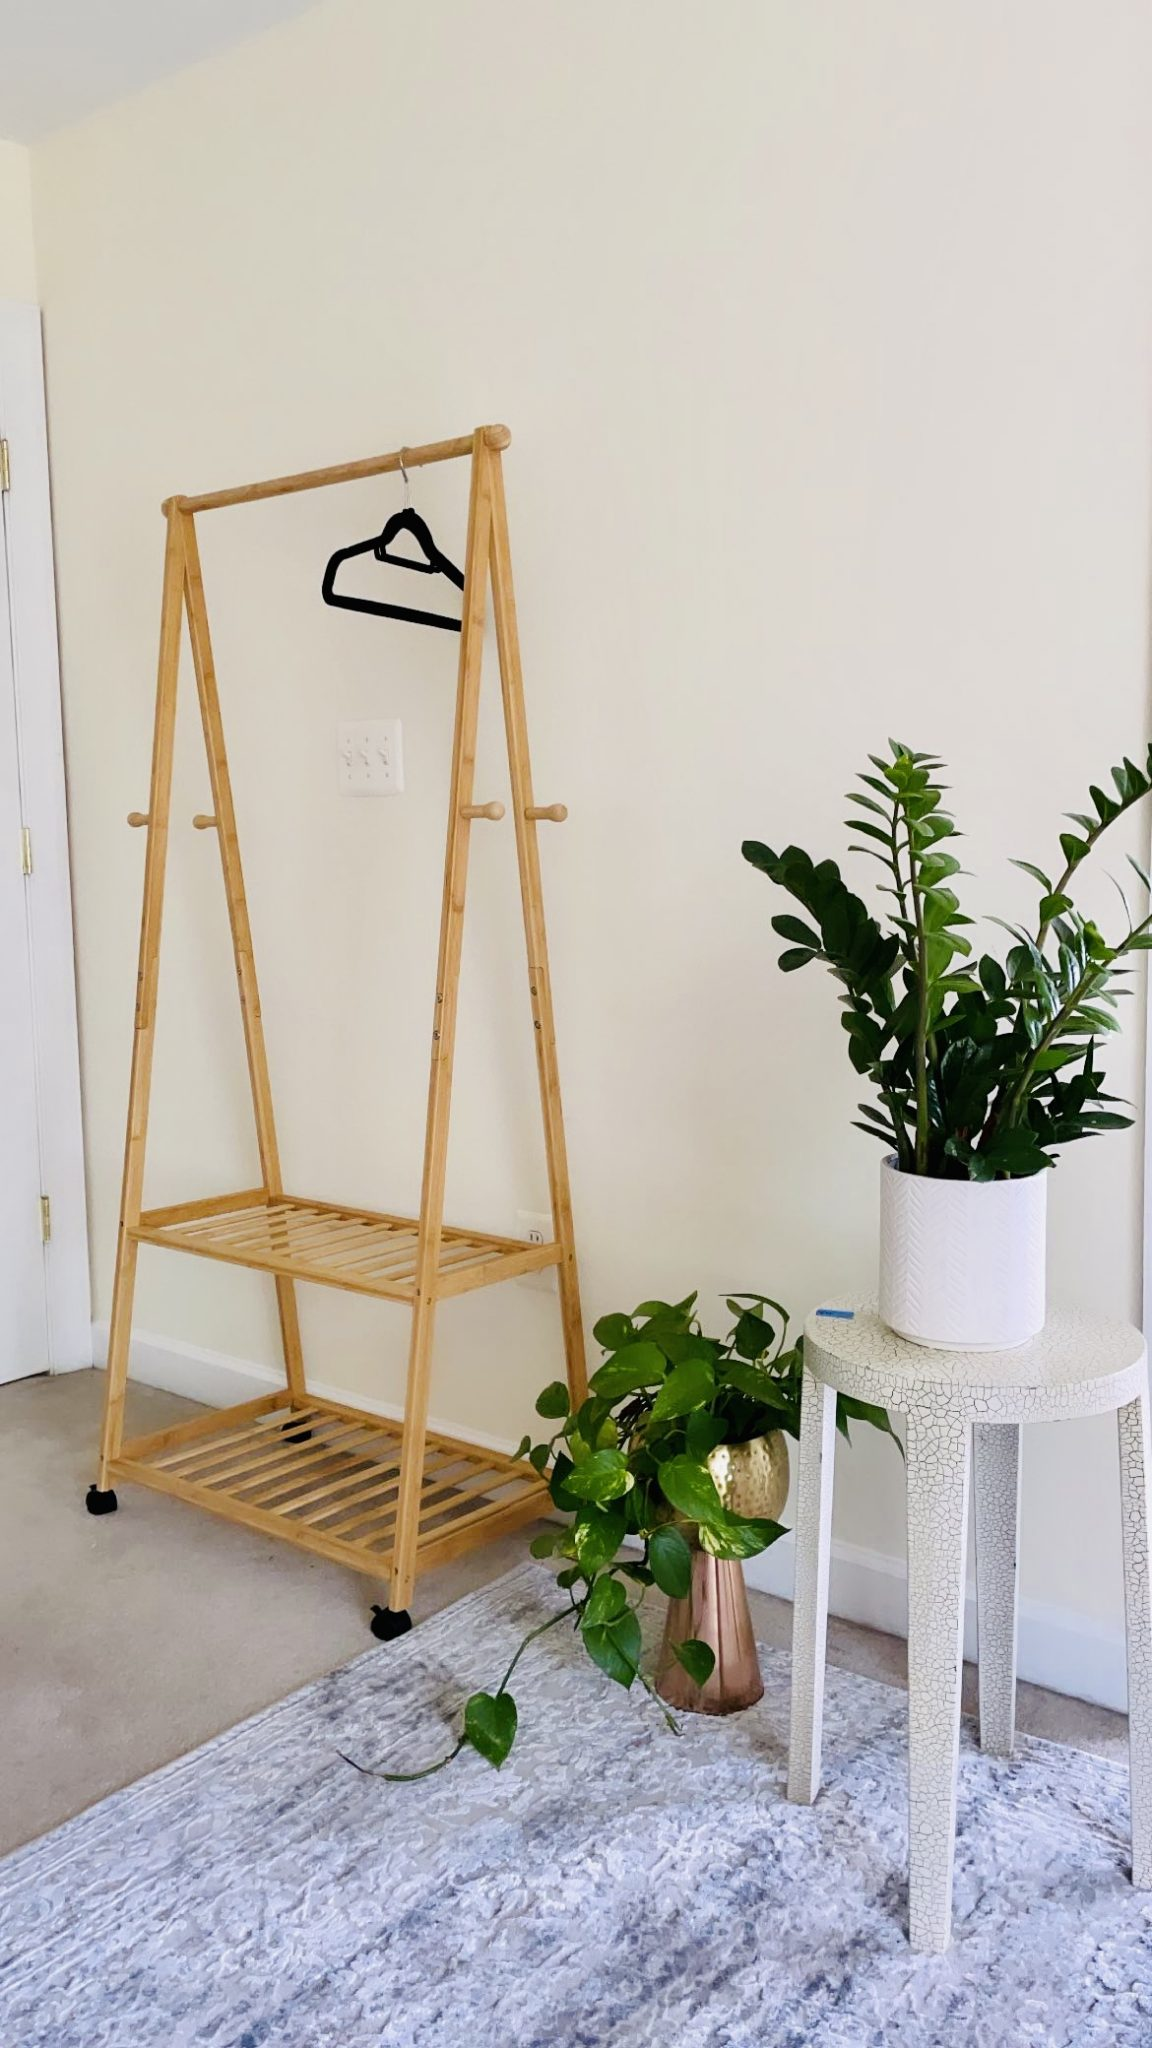 Bamboo Rolling Clothing Rack | Bamboo Clothing Rack by Maryland life and style blog, Dreaming Loud: image of a bamboo clothing rack next to some potted house plants.